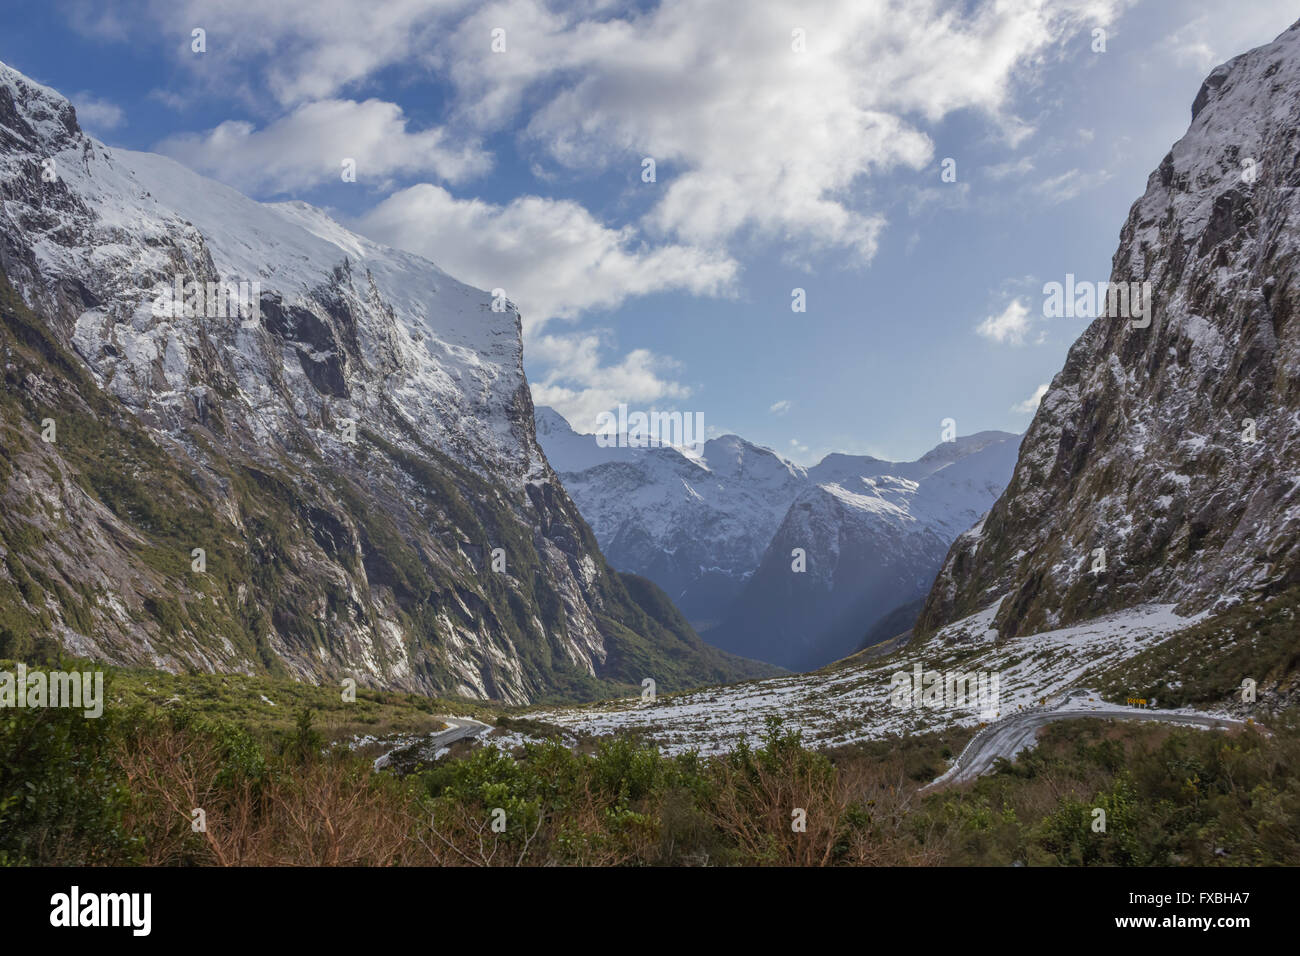 The road to and views at Milford Sound in New Zealand - Stock Image